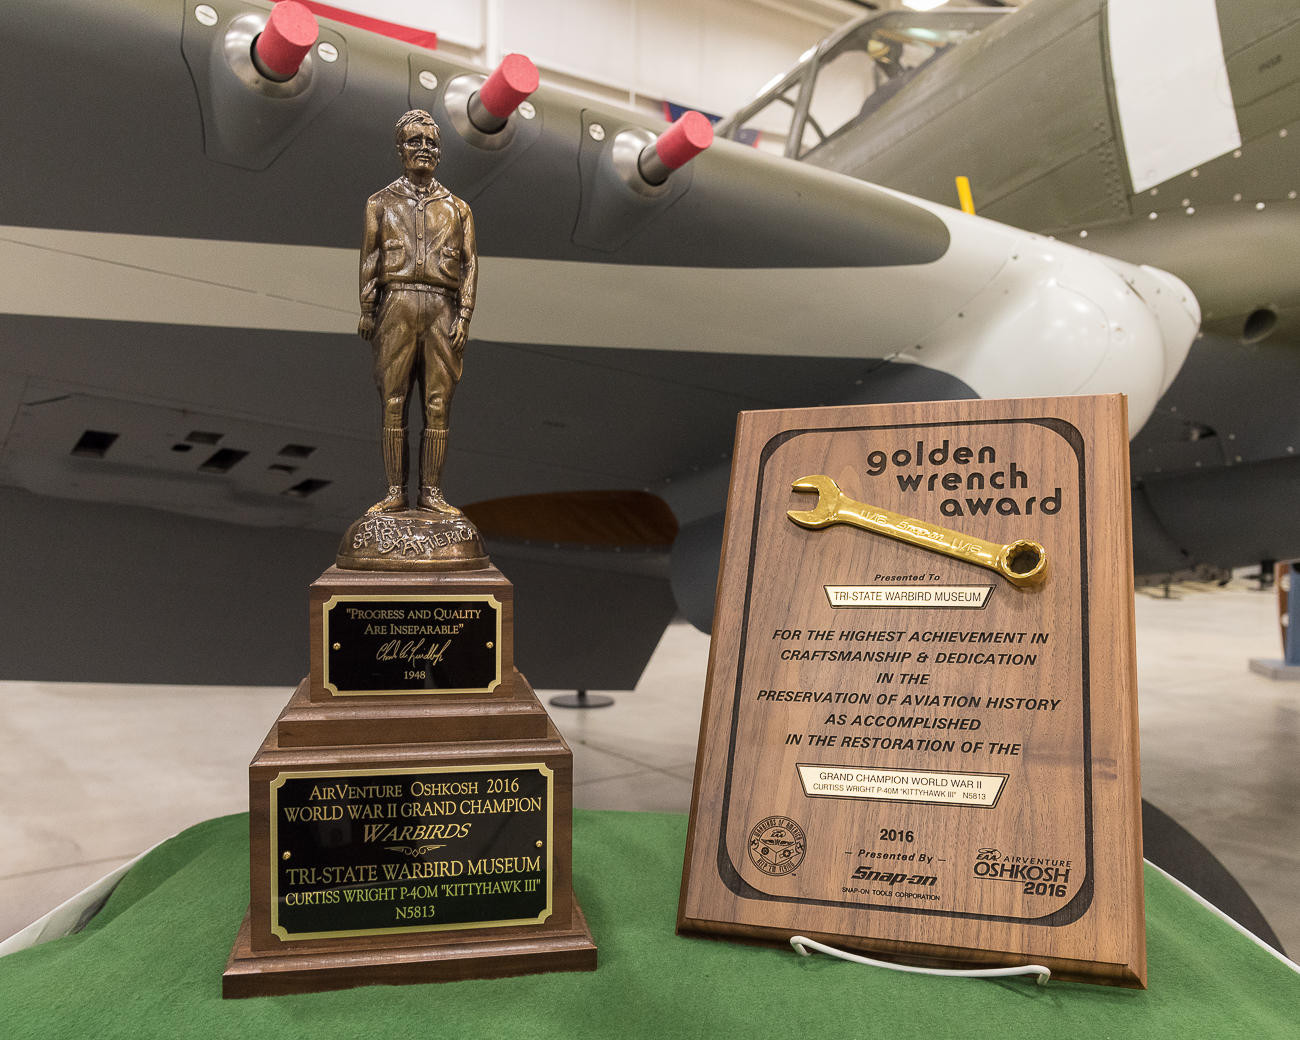 The Warbird Museum has won awards for its preservation and restoration of WWII-era planes. / Image: Phil Armstrong, Cincinnati Refined // Published: 9.6.17